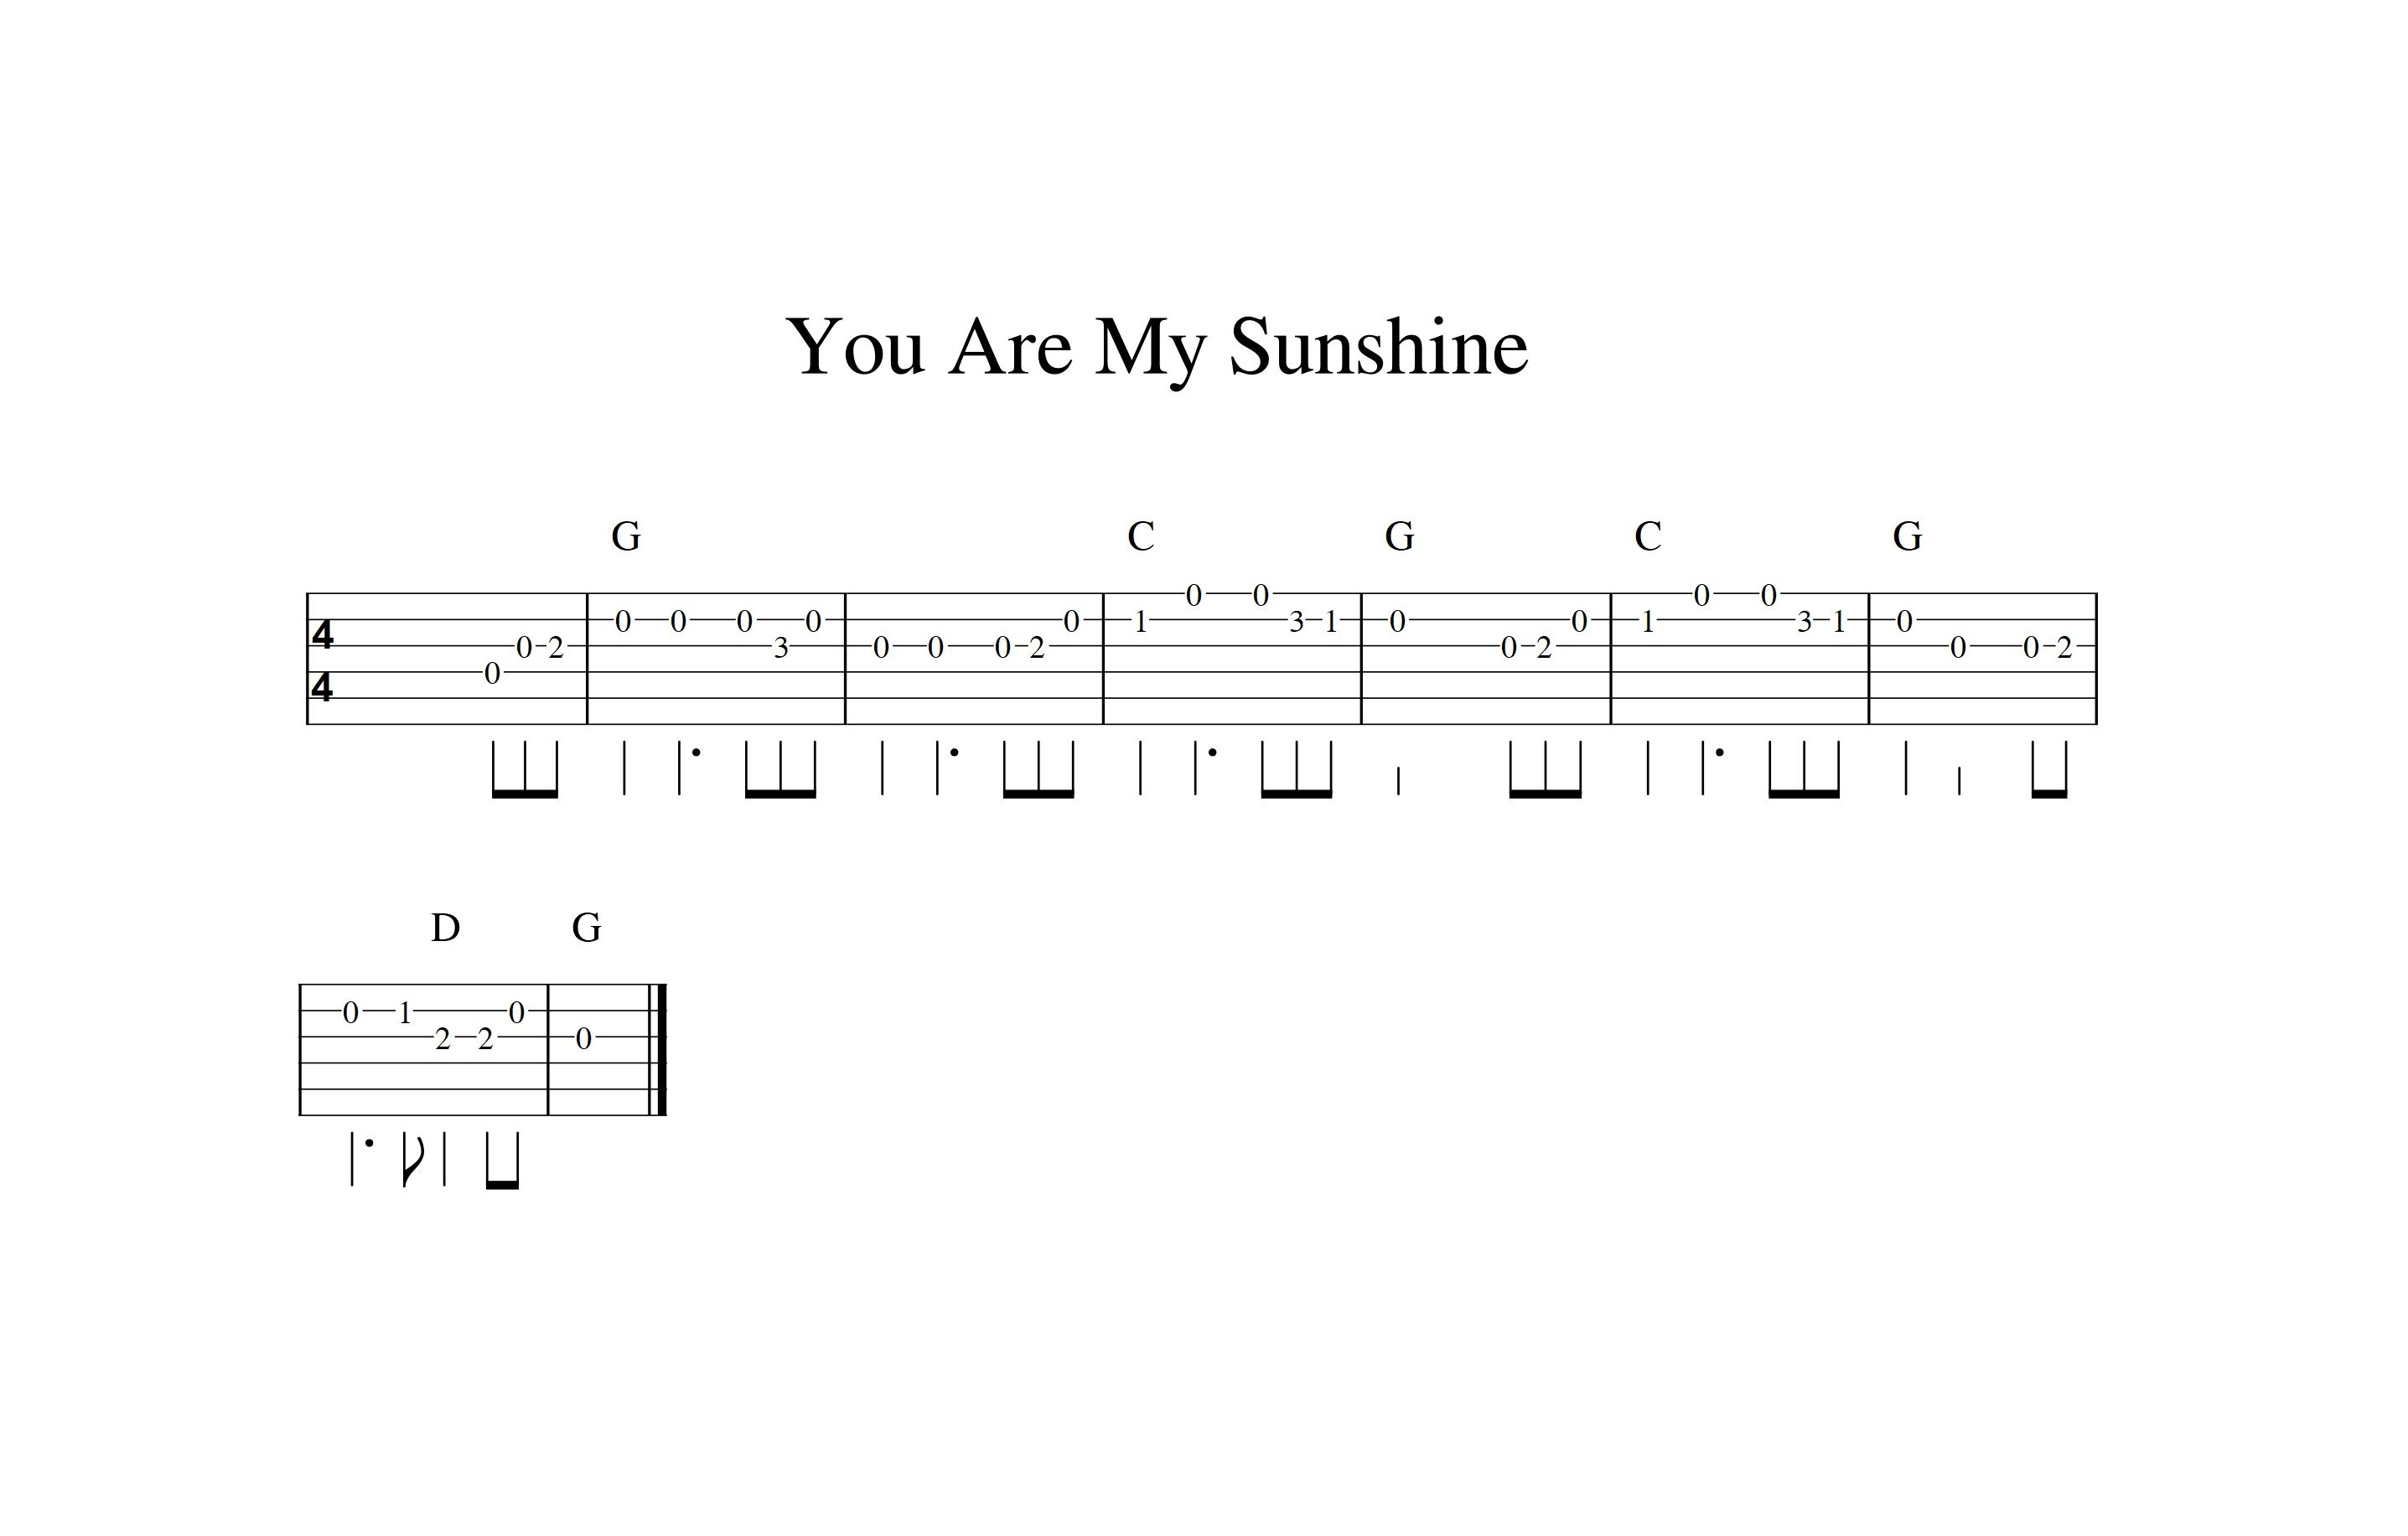 You Are My Sunshine Easy Guitar Tab Guitar Lessons Guitar Sheet Music Guitar Tabs How to read guitar sheet music